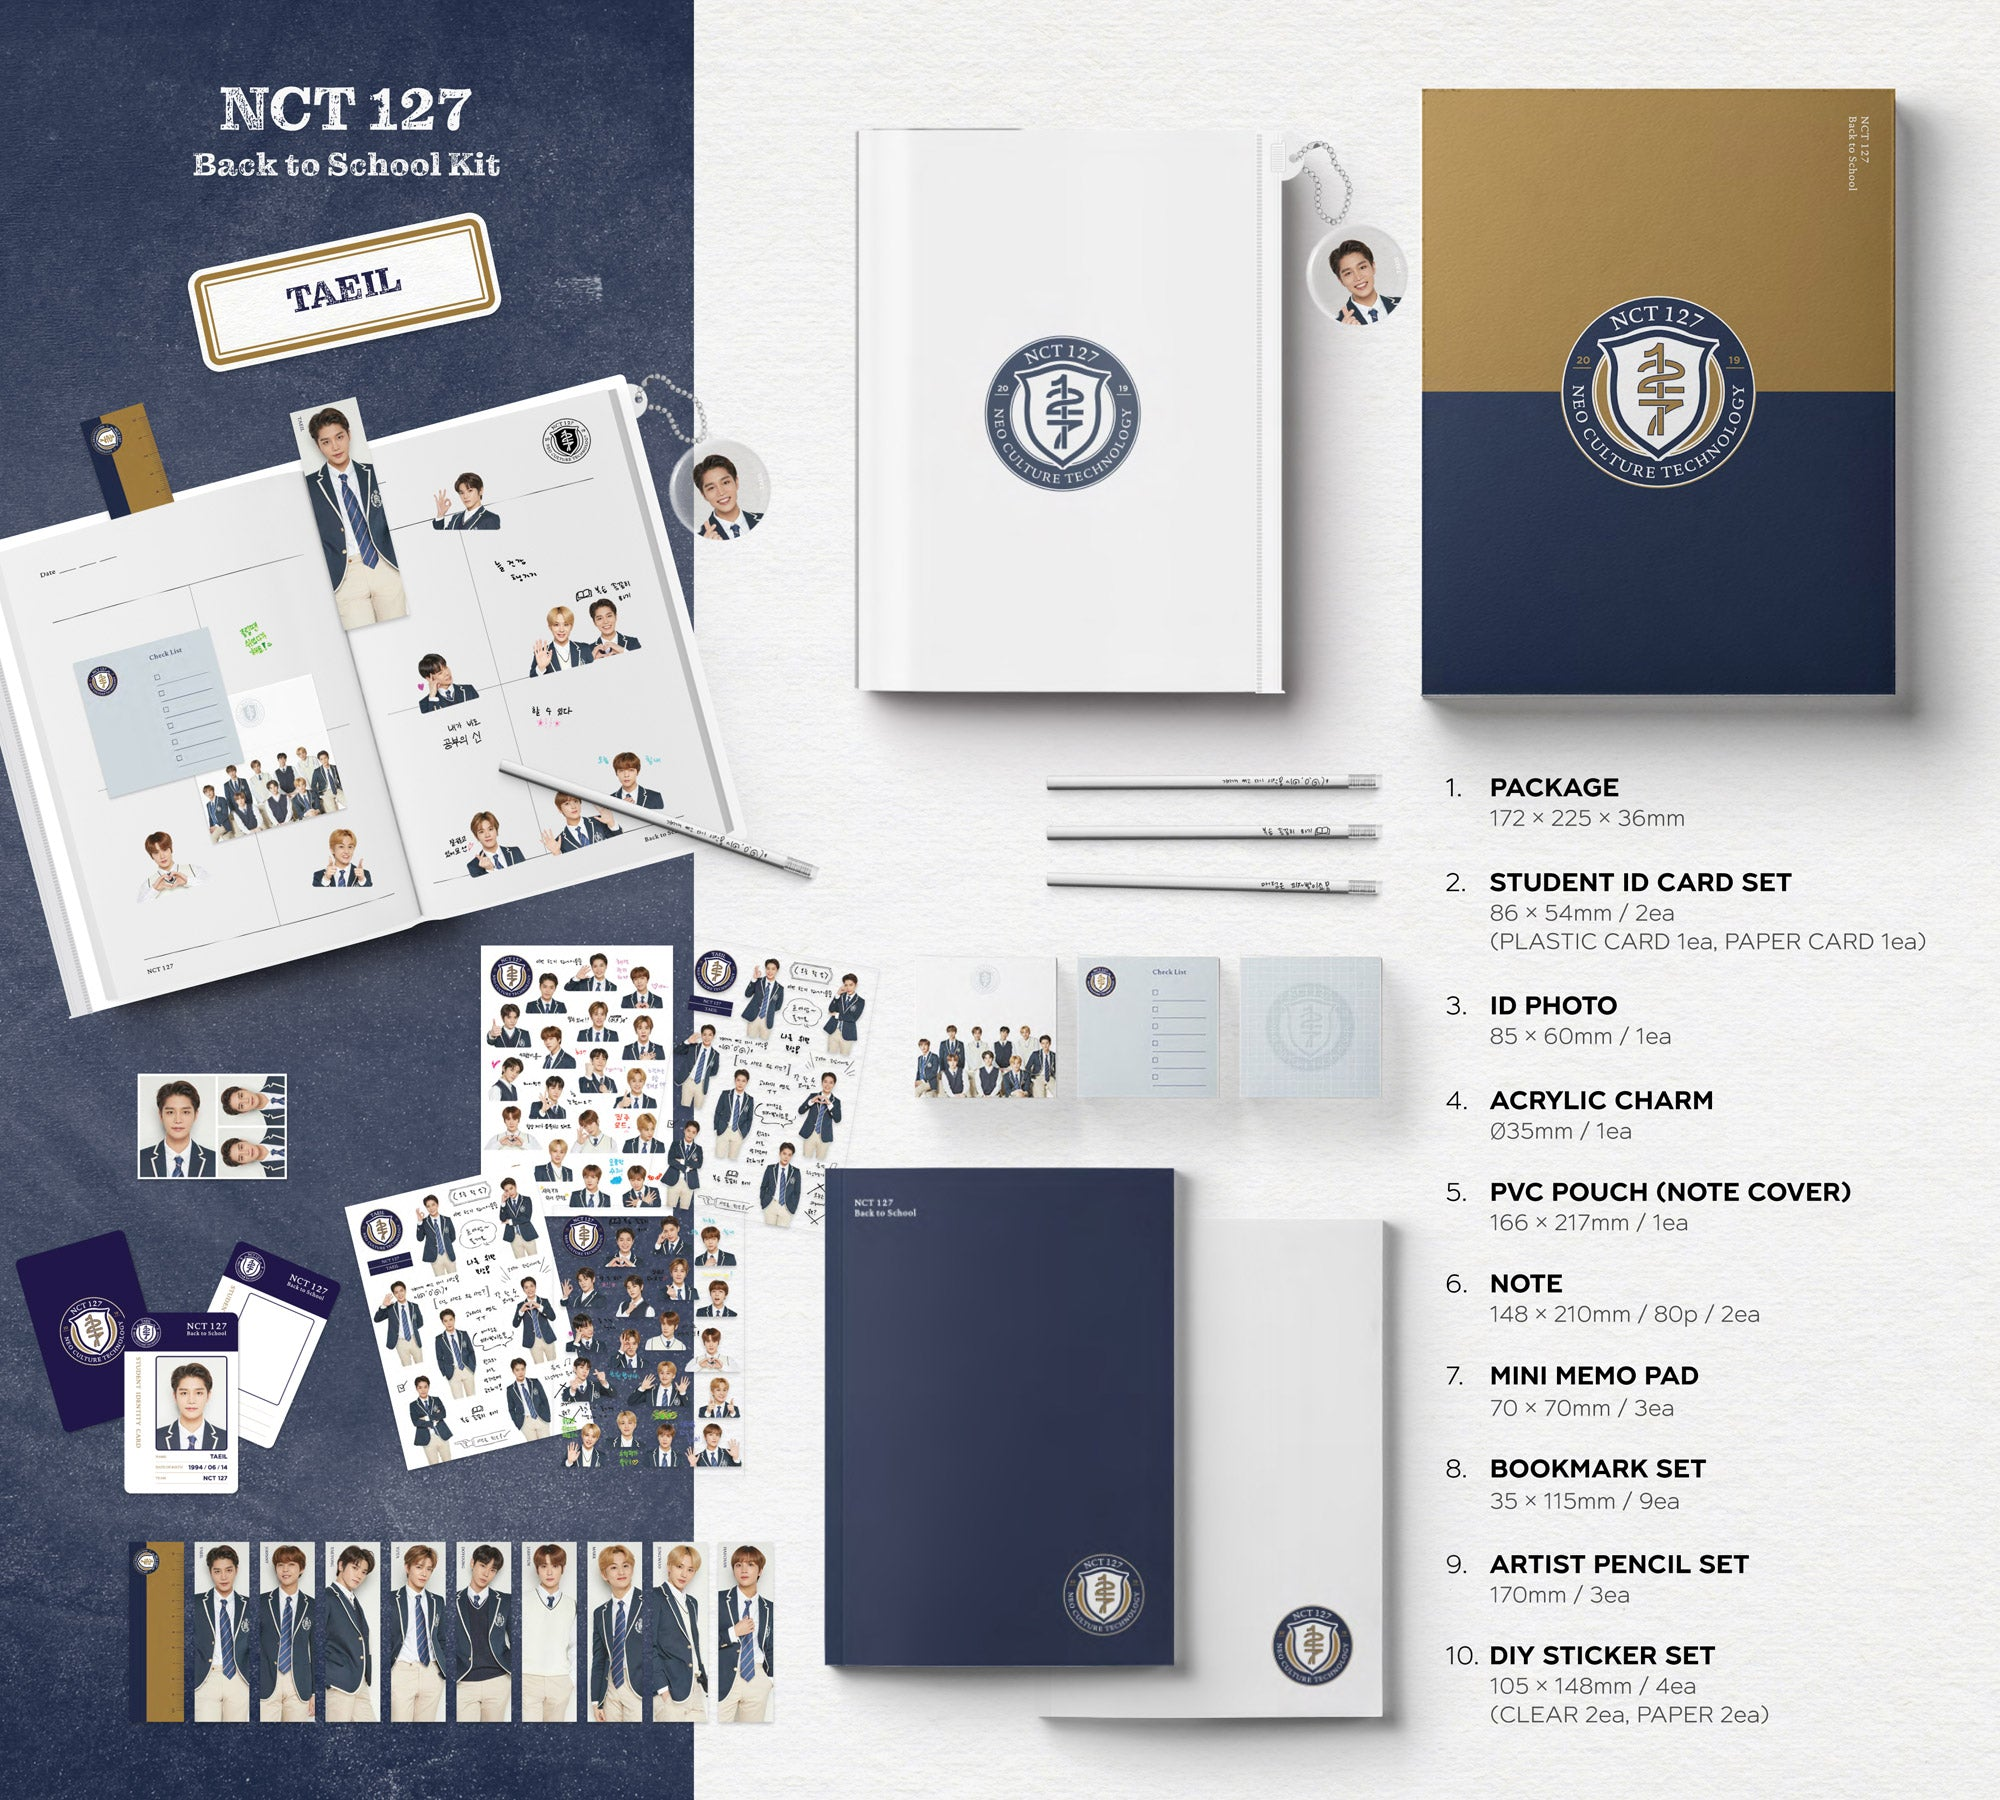 NCT127 Back to School Kit